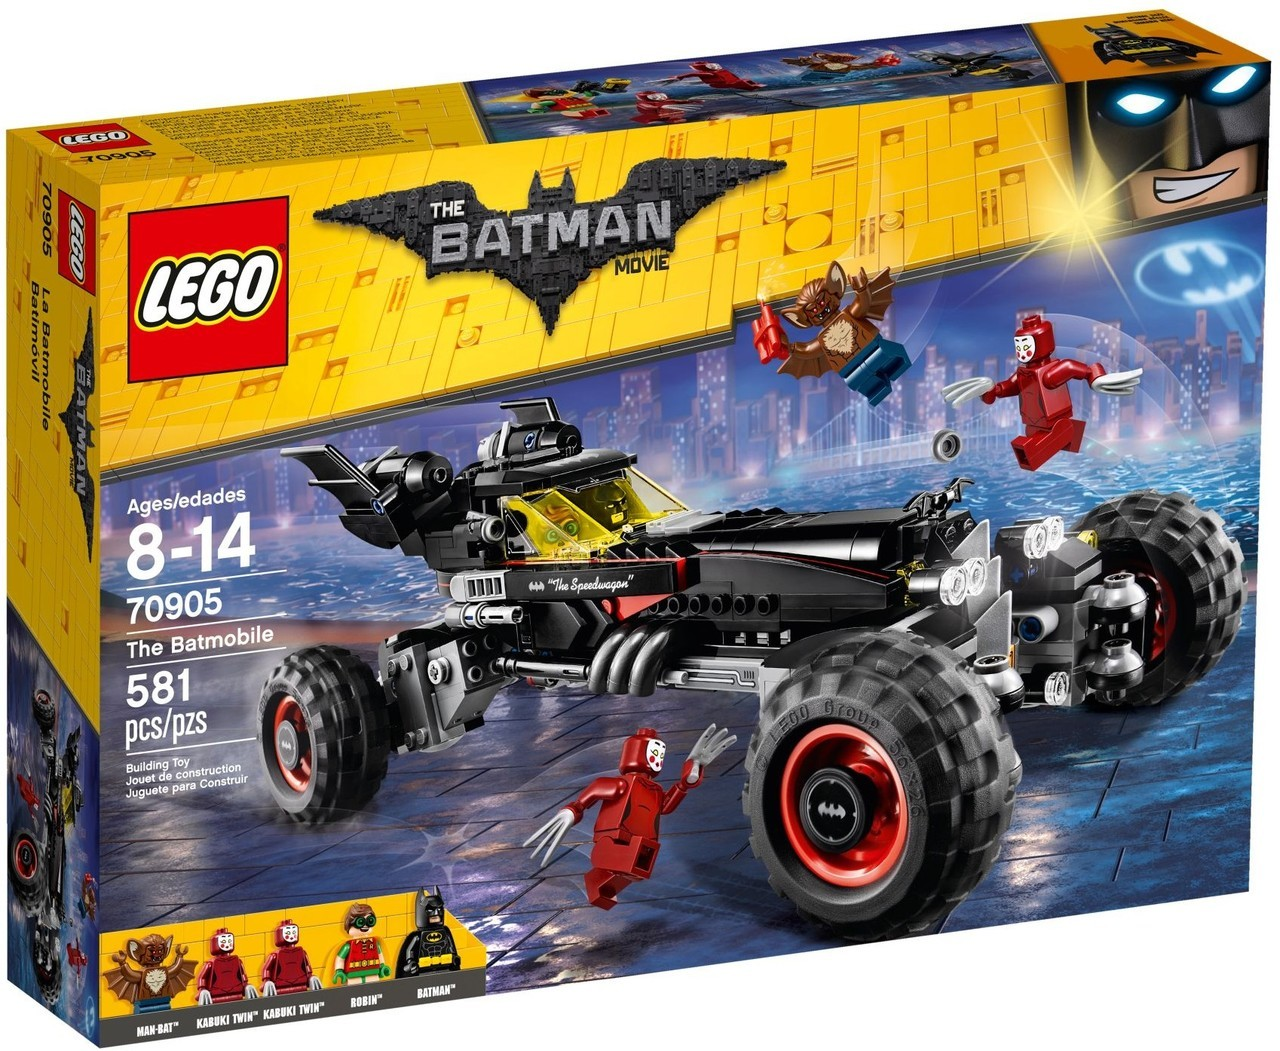 The Batmobile 70905